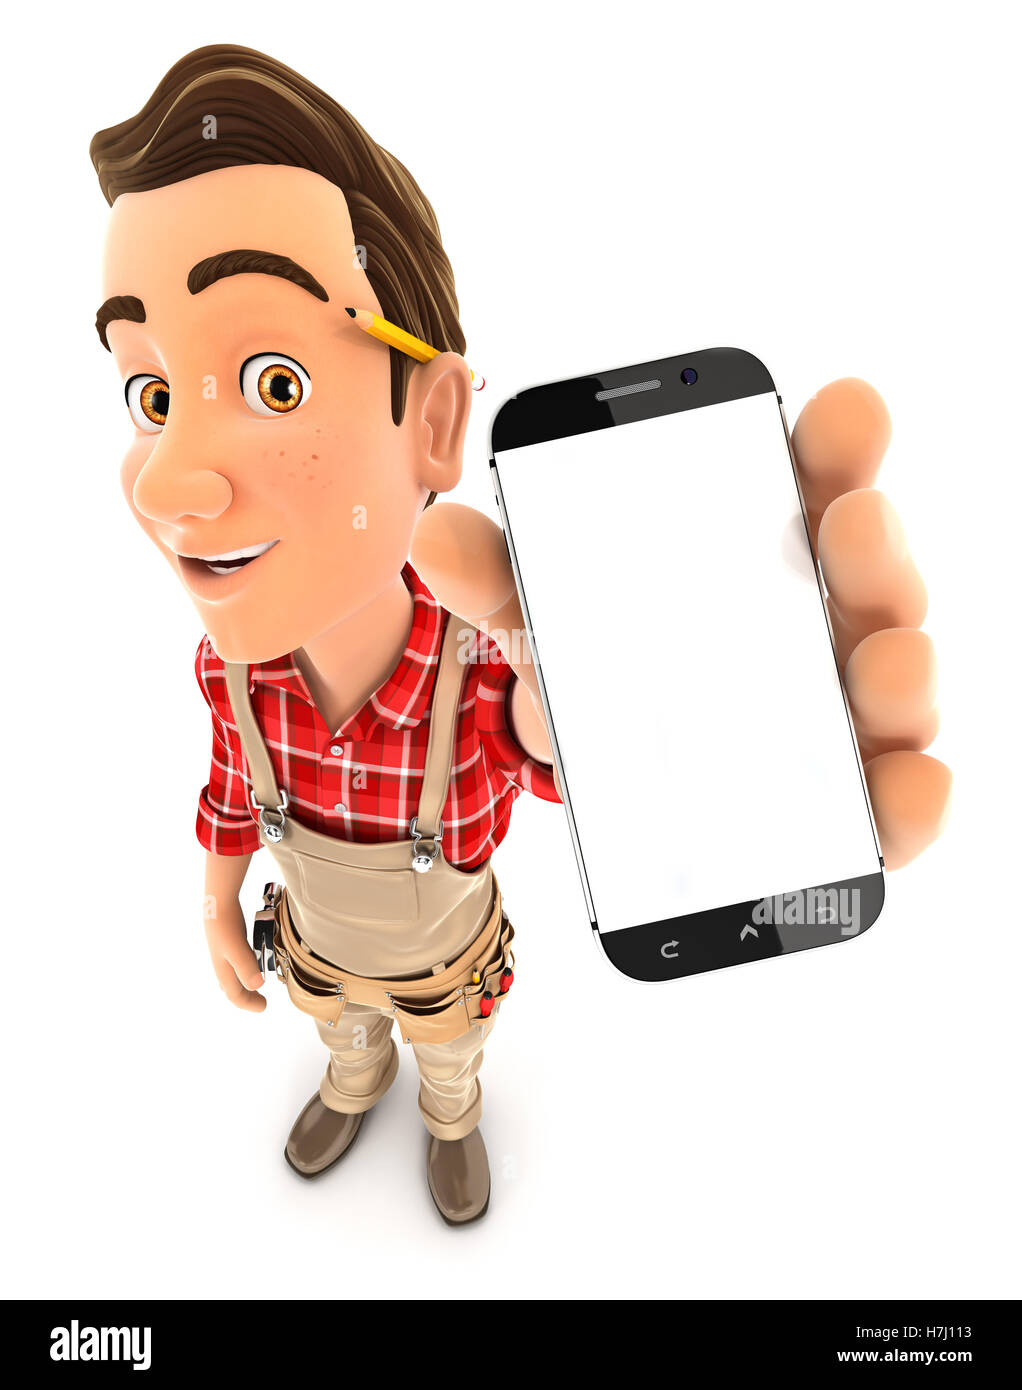 3d handyman holding smartphone, illustration with isolated white background Stock Photo